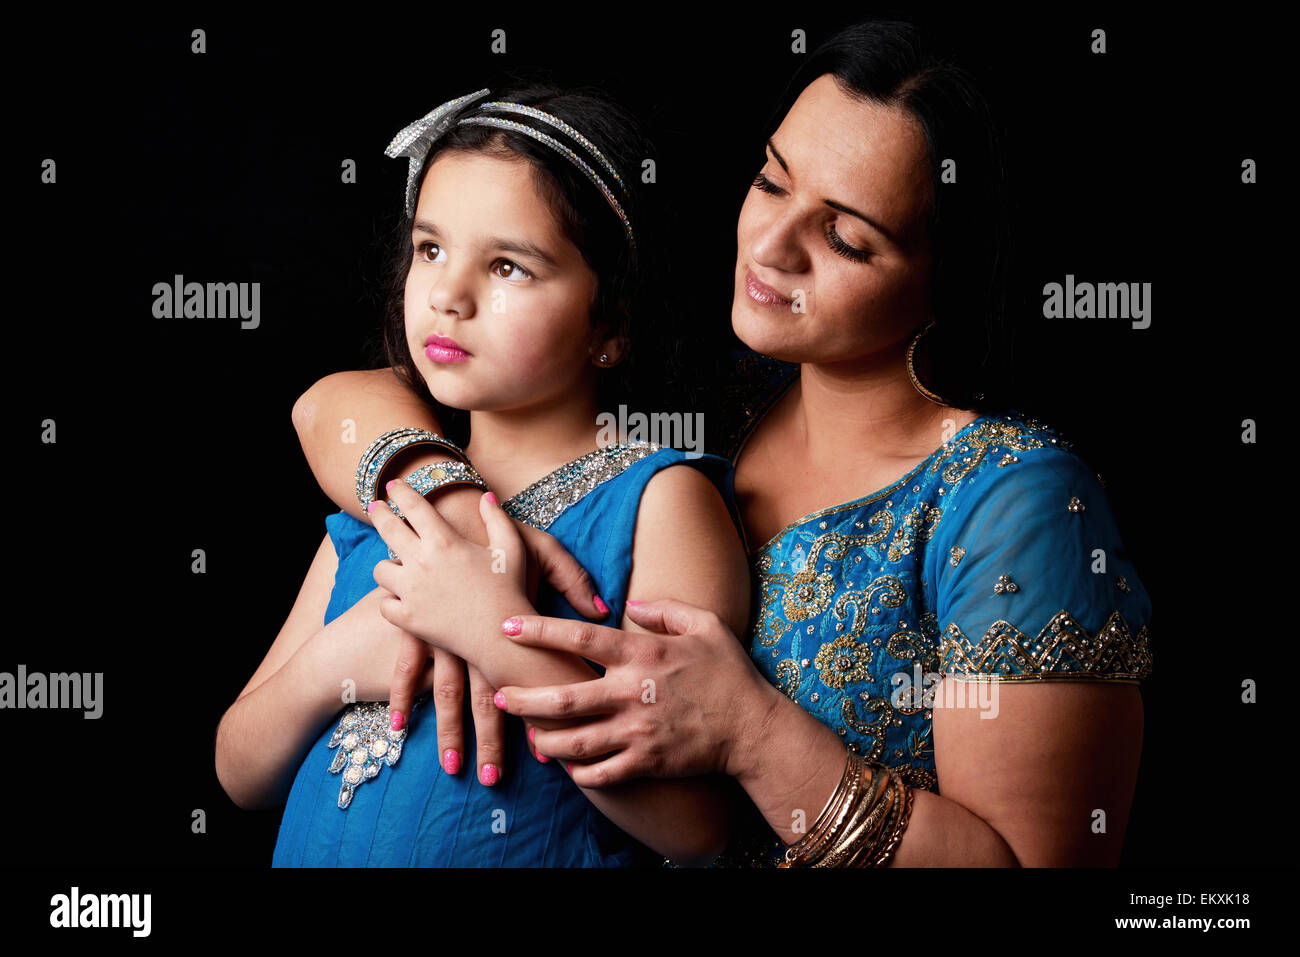 A mother and her daughter in a studio against  a black background - Stock Image